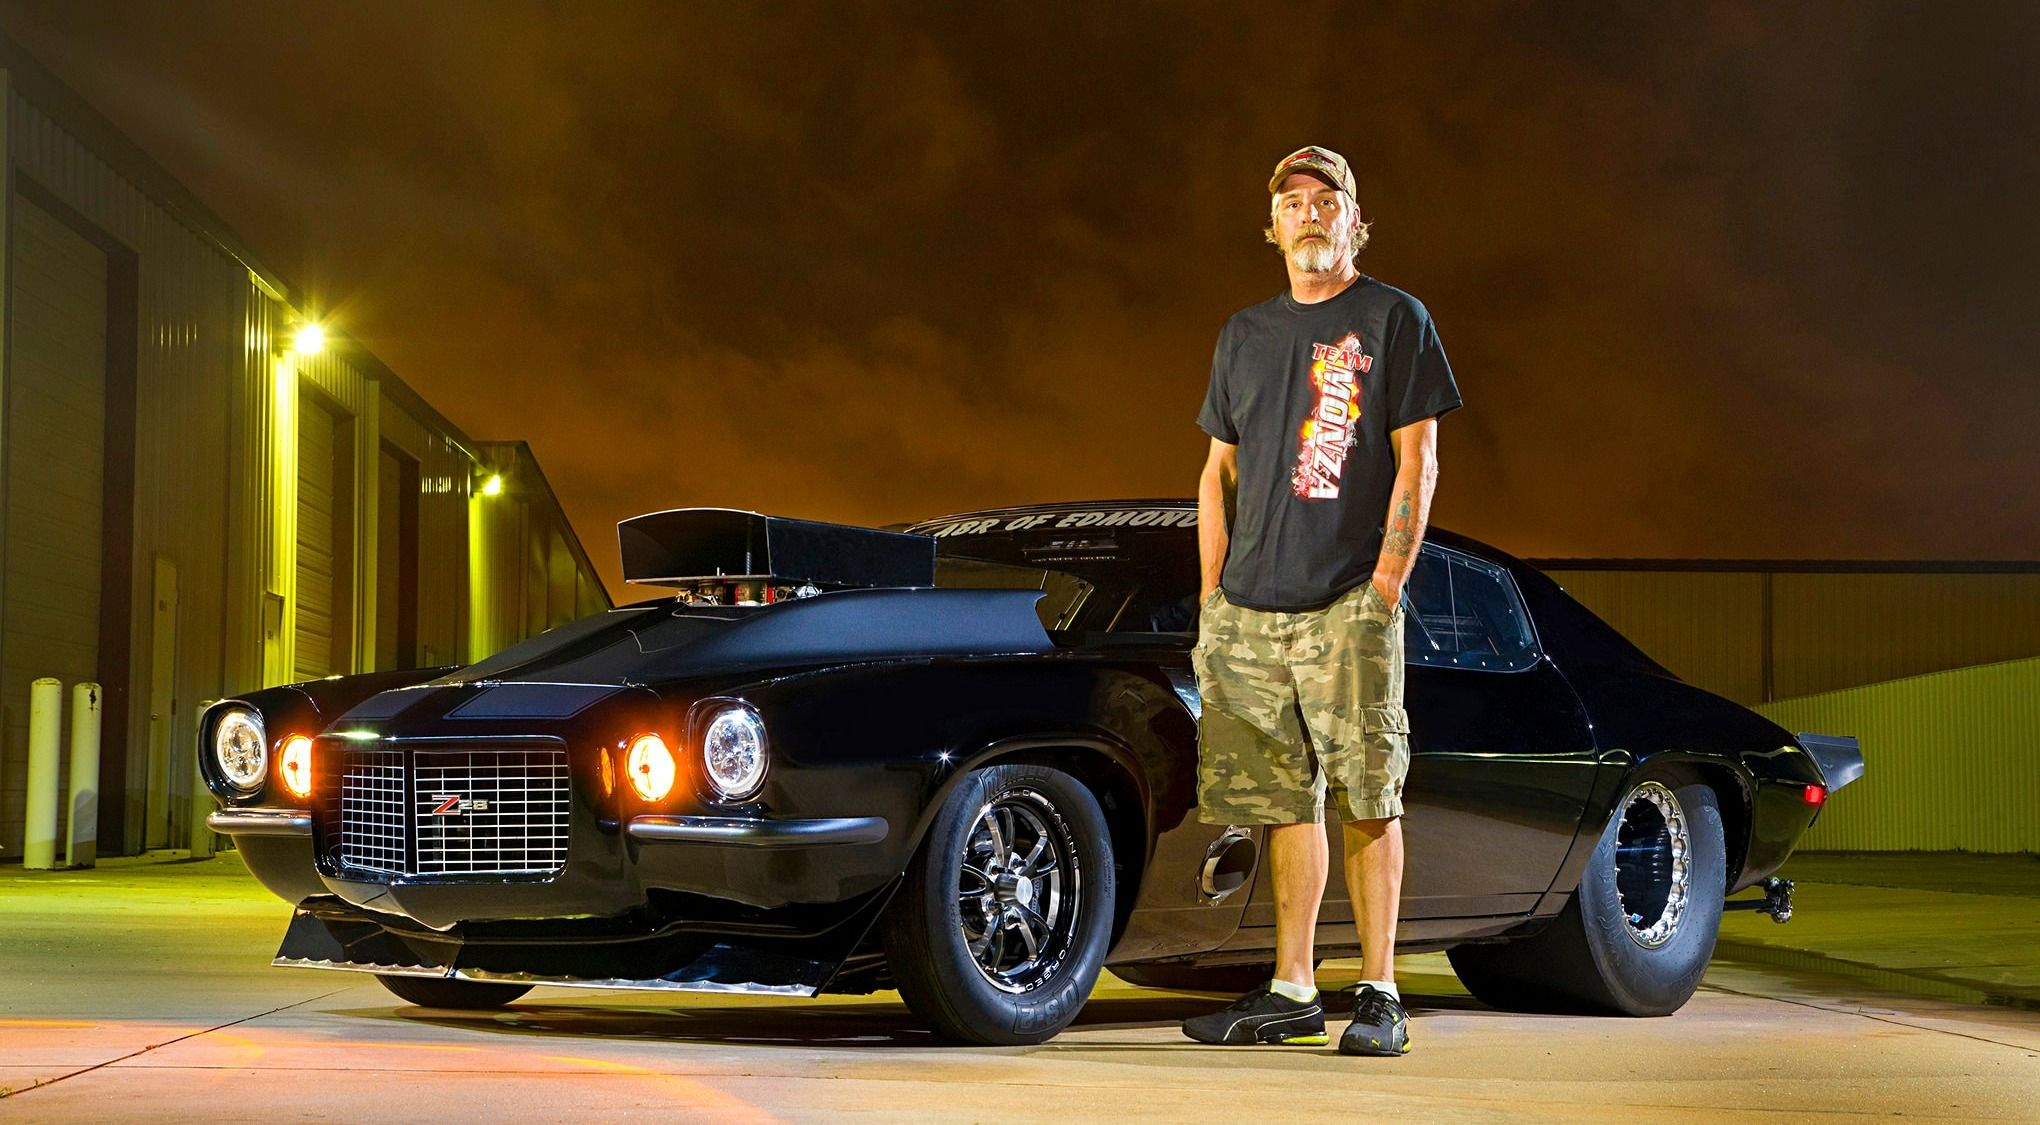 Jerry Johnston Aka Monza From Street Outlaws Has Collected A